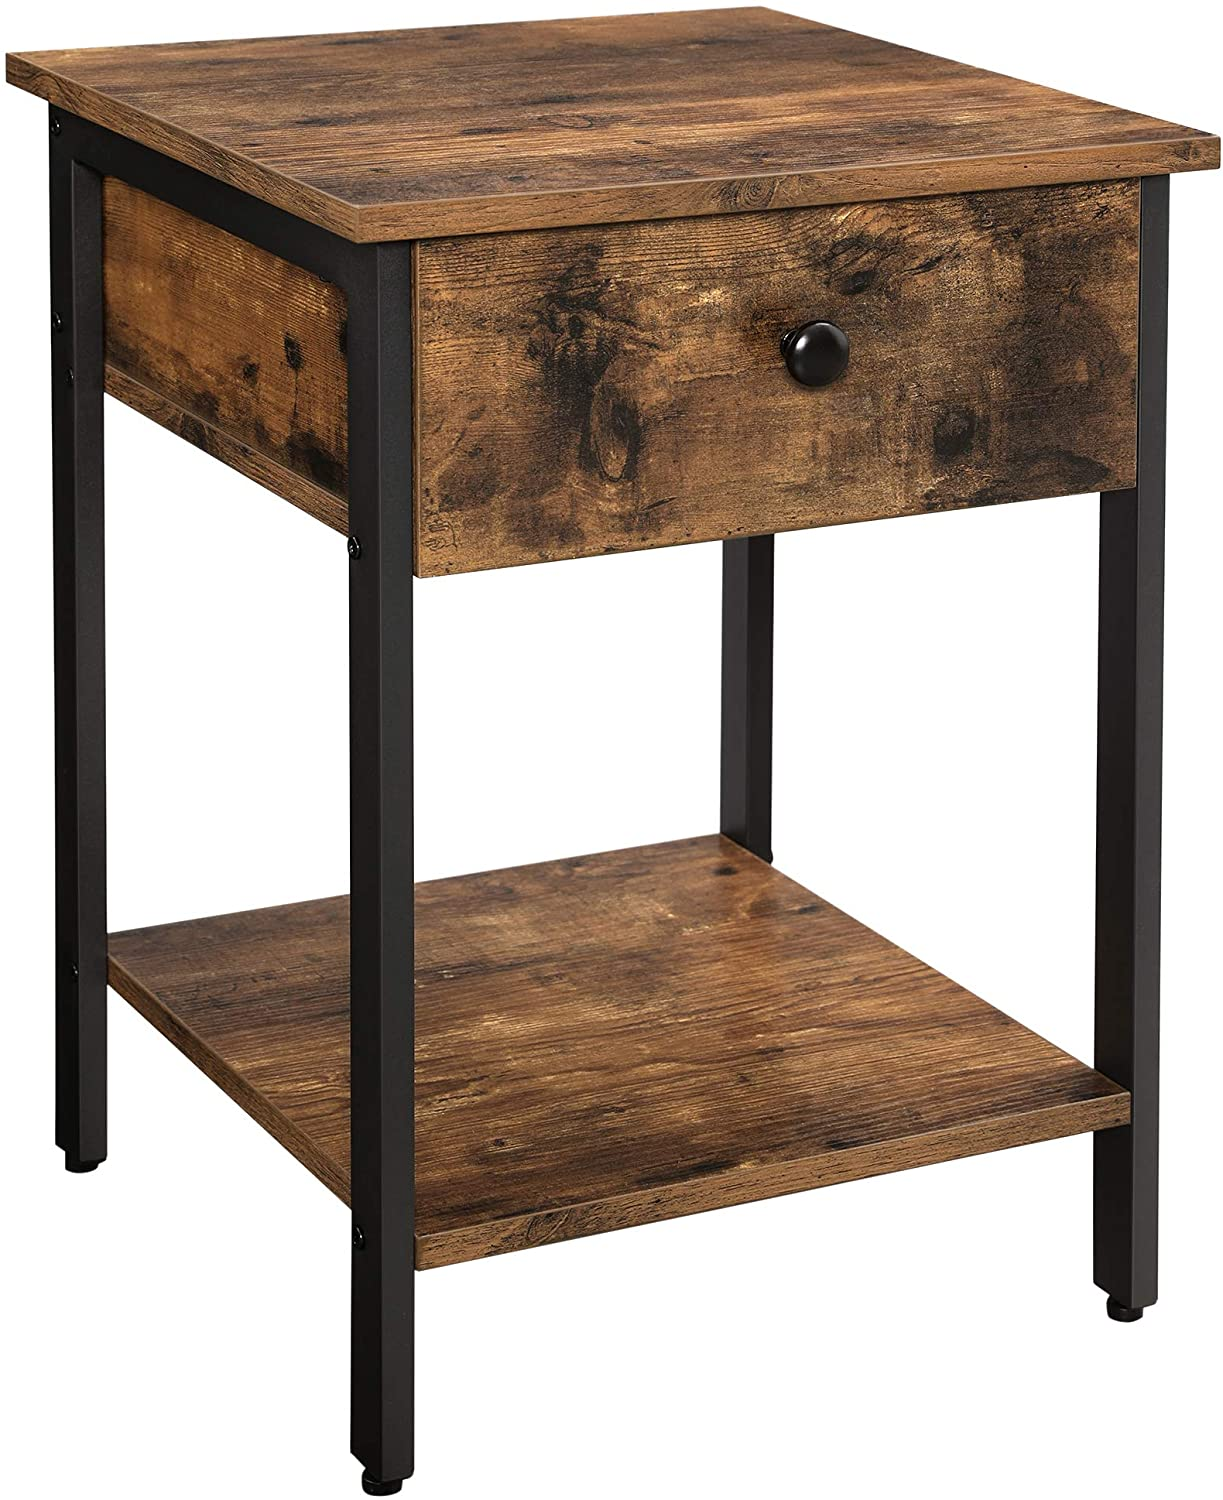 Enjoy fast, free nationwide shipping!  Owned by a husband and wife team of high-school music teachers, HawkinsWoodshop.com is your one stop shop for affordable furniture.  Shop HawkinsWoodshop.com for solid wood & metal modern, traditional, contemporary, industrial, custom, rustic, and farmhouse furniture including our Rustic Brown and Black Side Table.